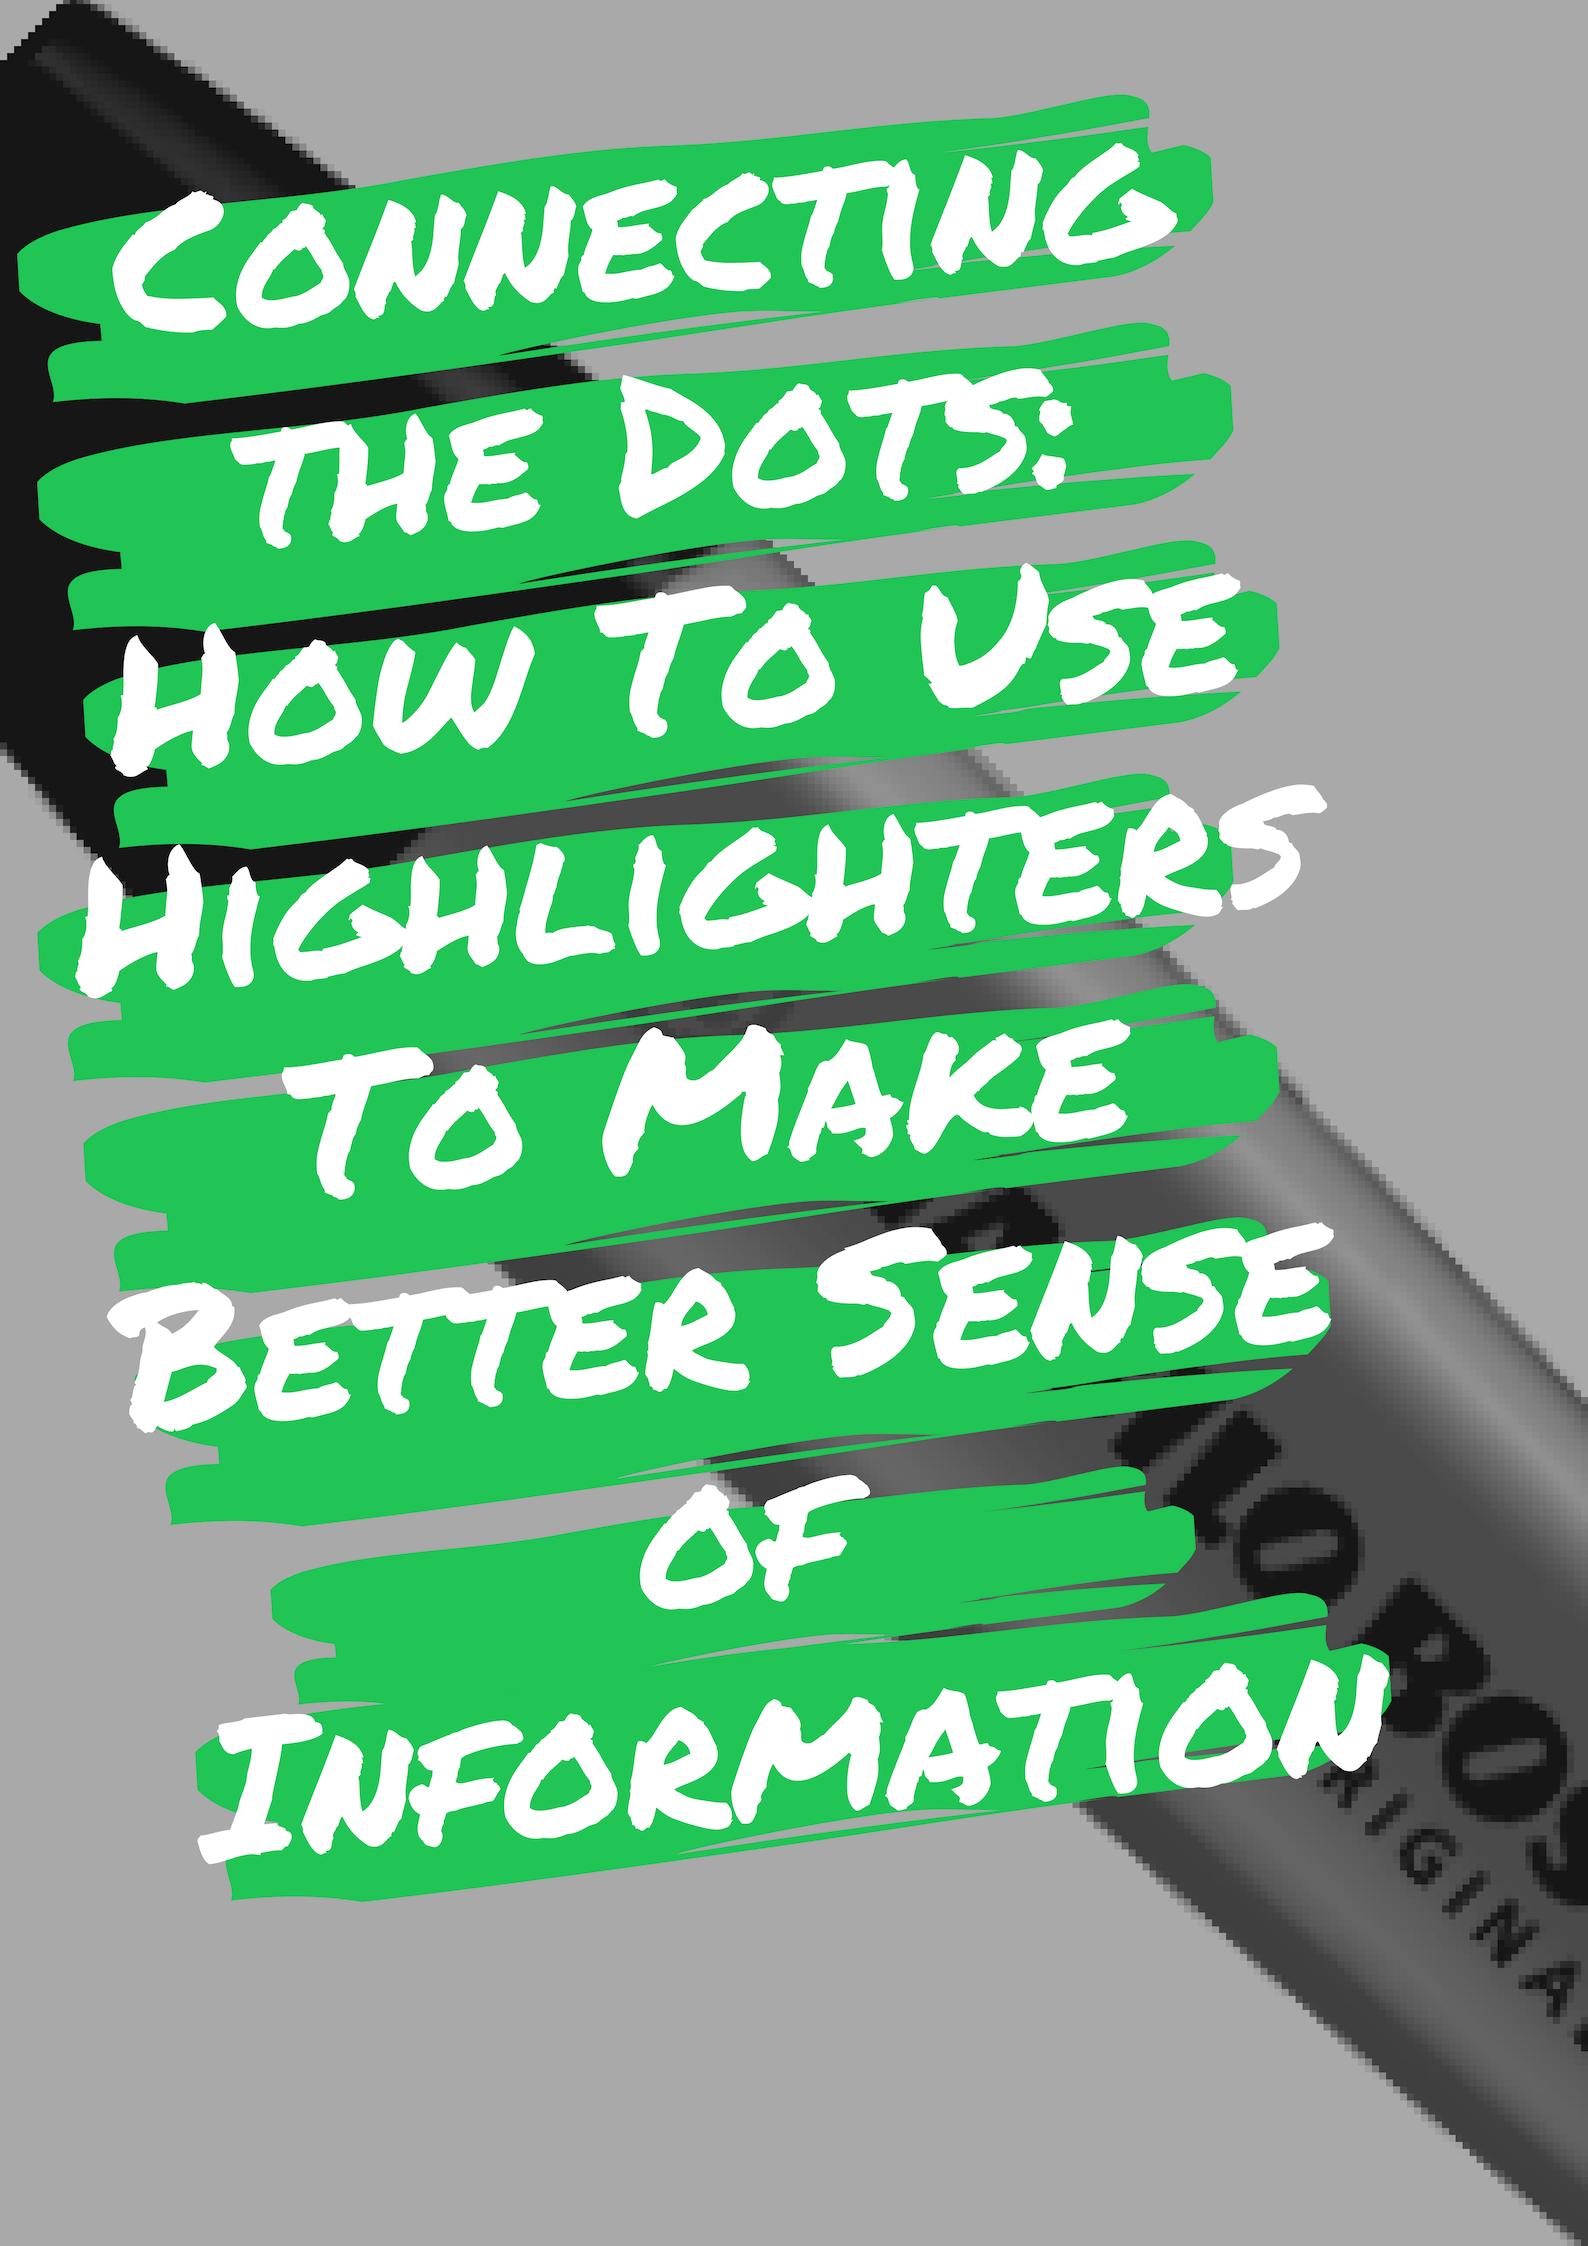 Connecting the Dots: How To Use Highlighters To Make Better Sense of Information